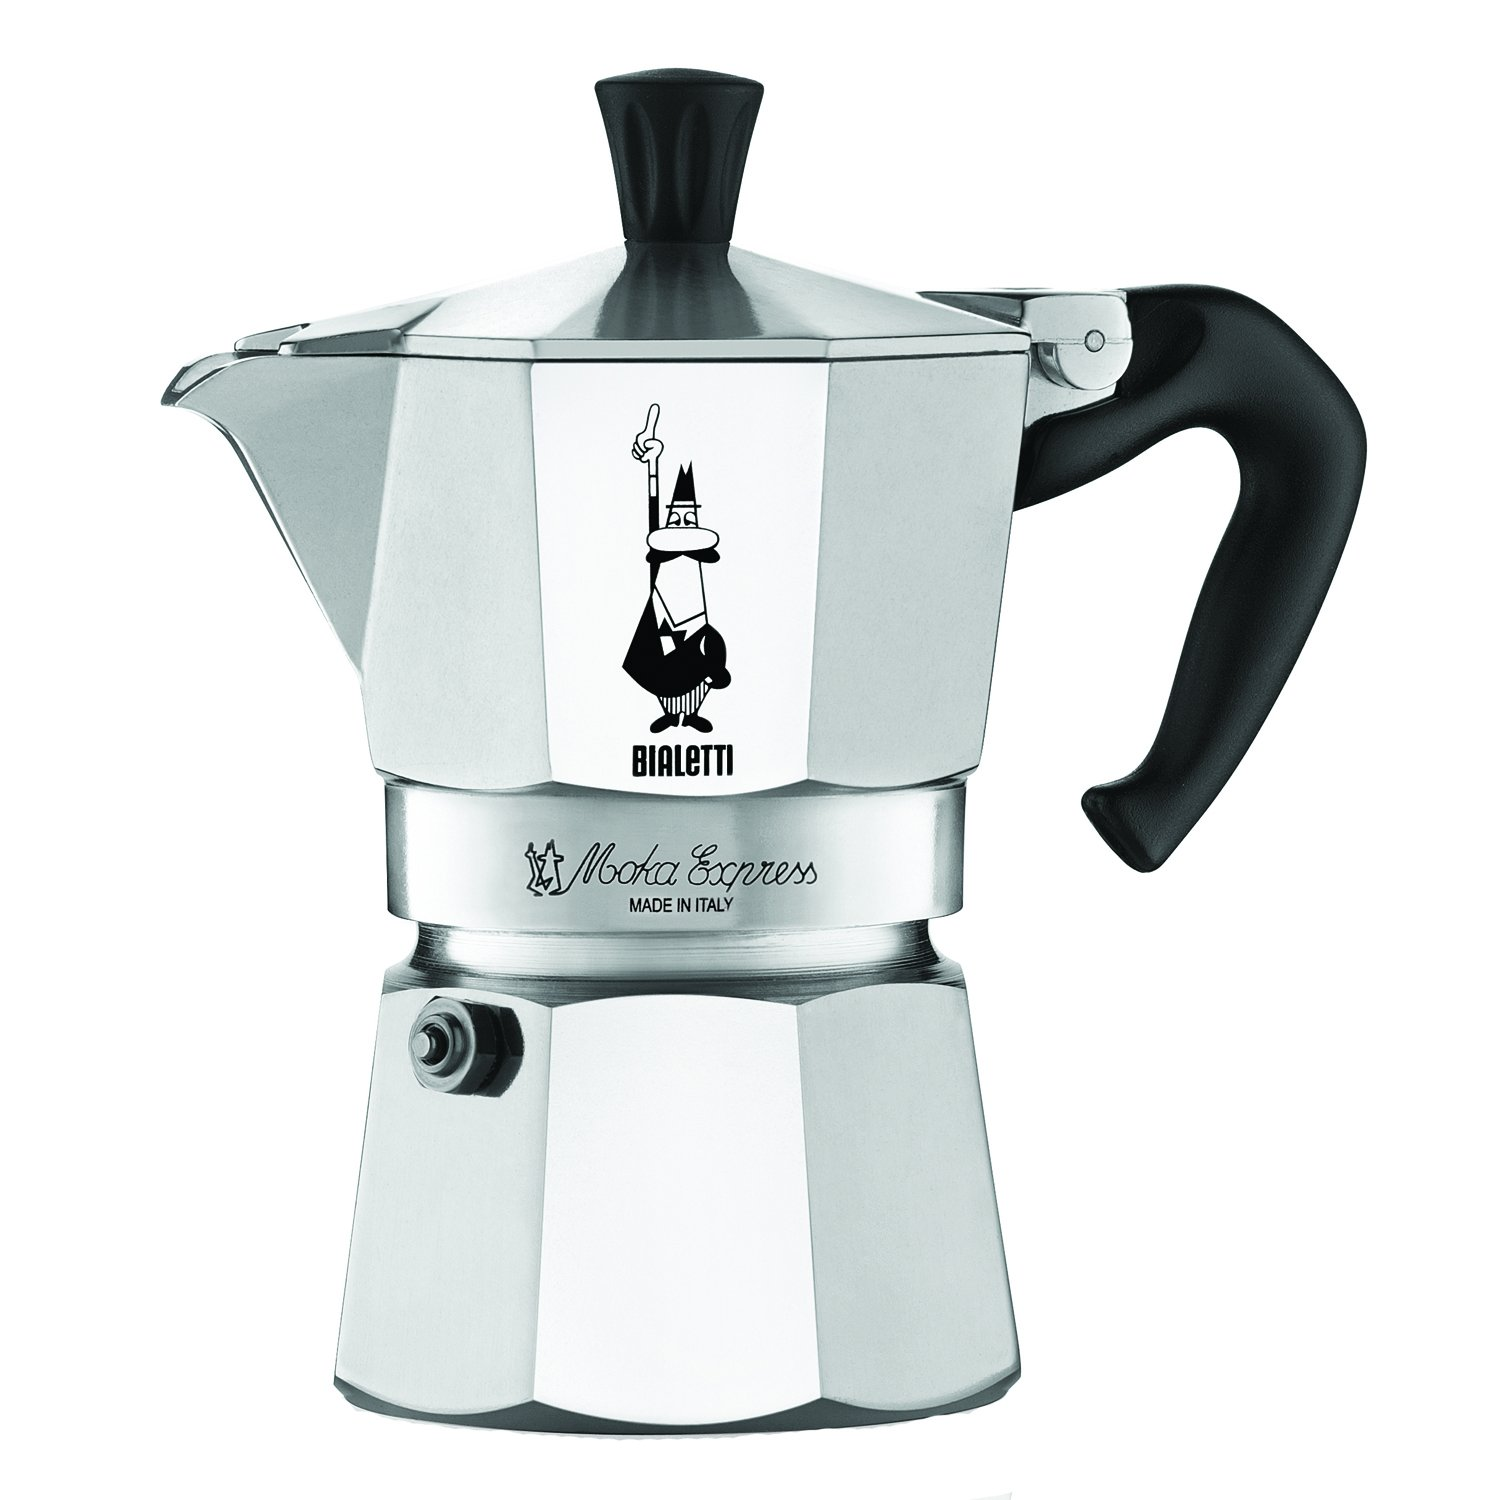 Stovetop Coffee Maker Home : Brand New Bialetti 6799 Moka Express 3 Cup Stovetop Espresso Maker by Bialetti eBay